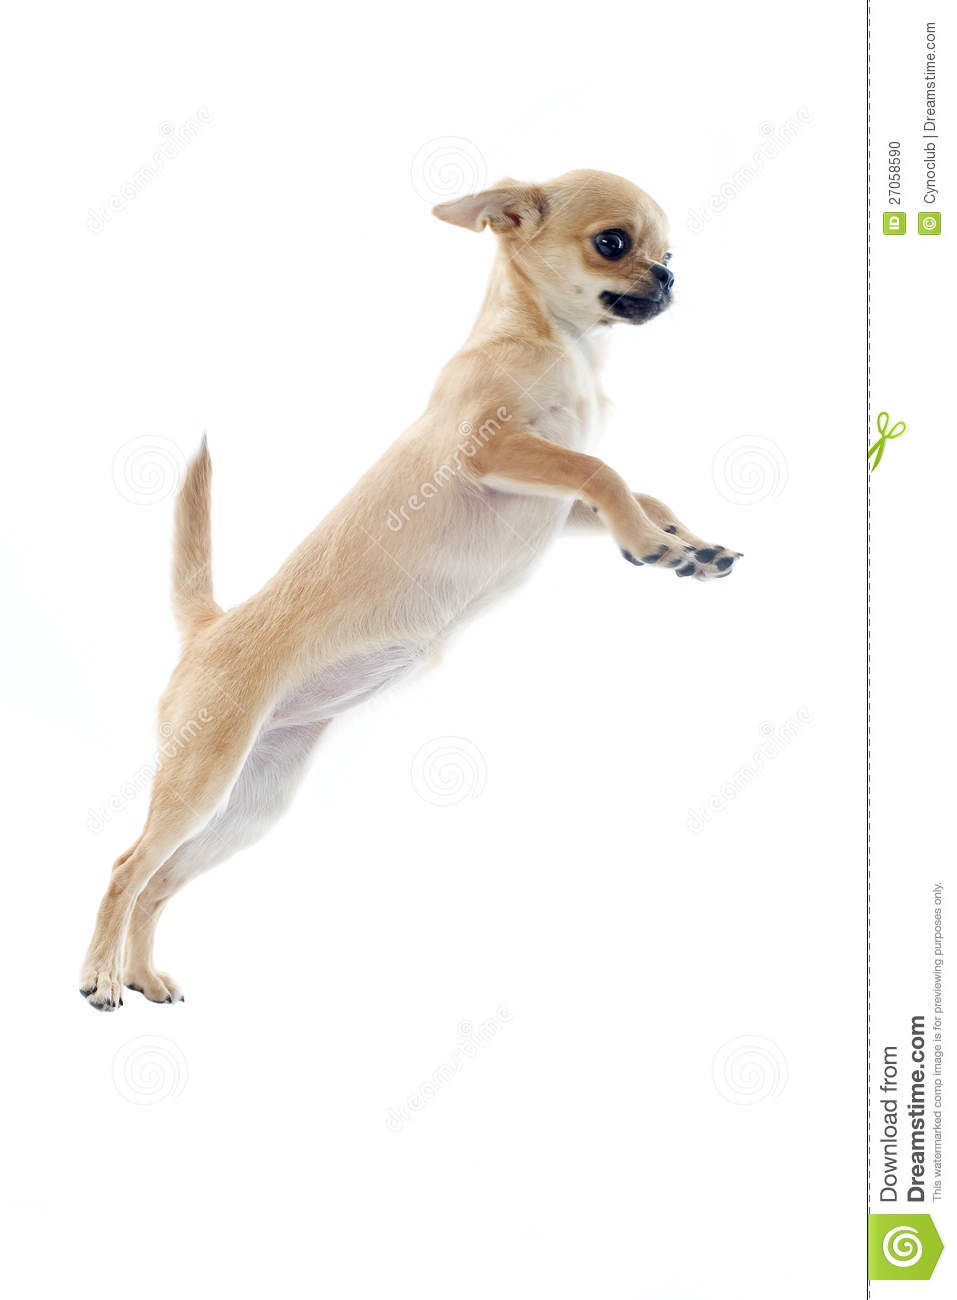 Jumping Puppy Chihuahua Stock Photo Image Of Chihuahua